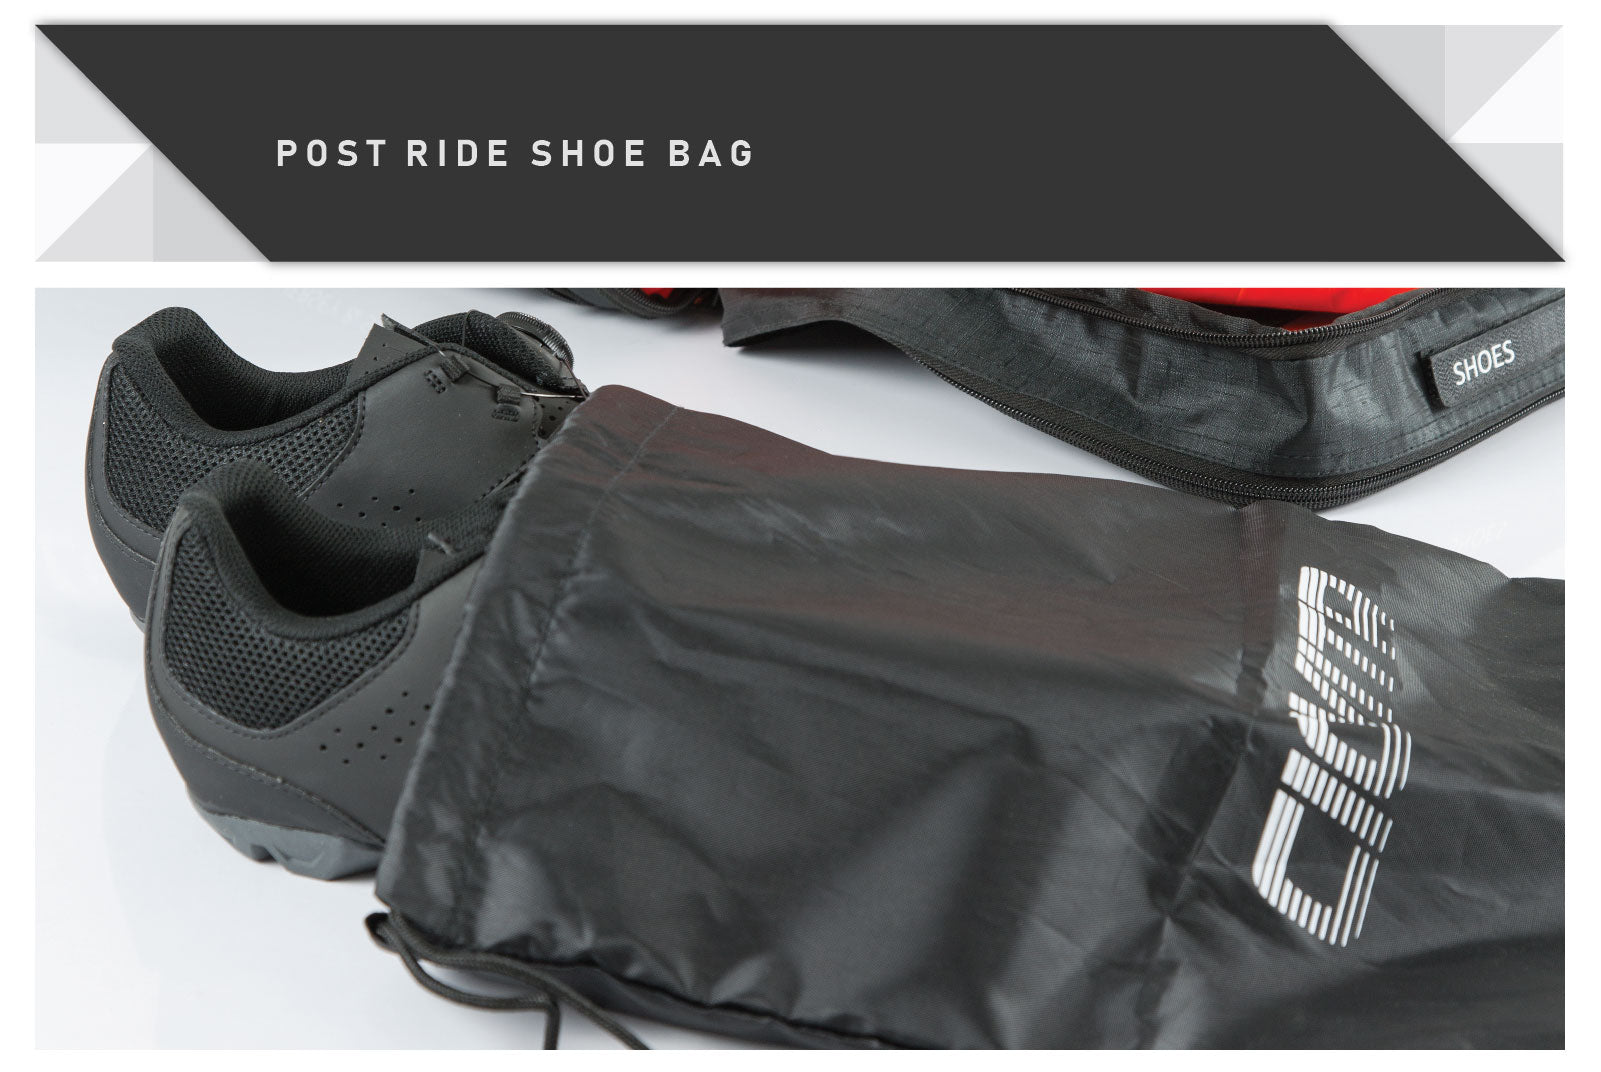 Dedicated post ride shoe bag